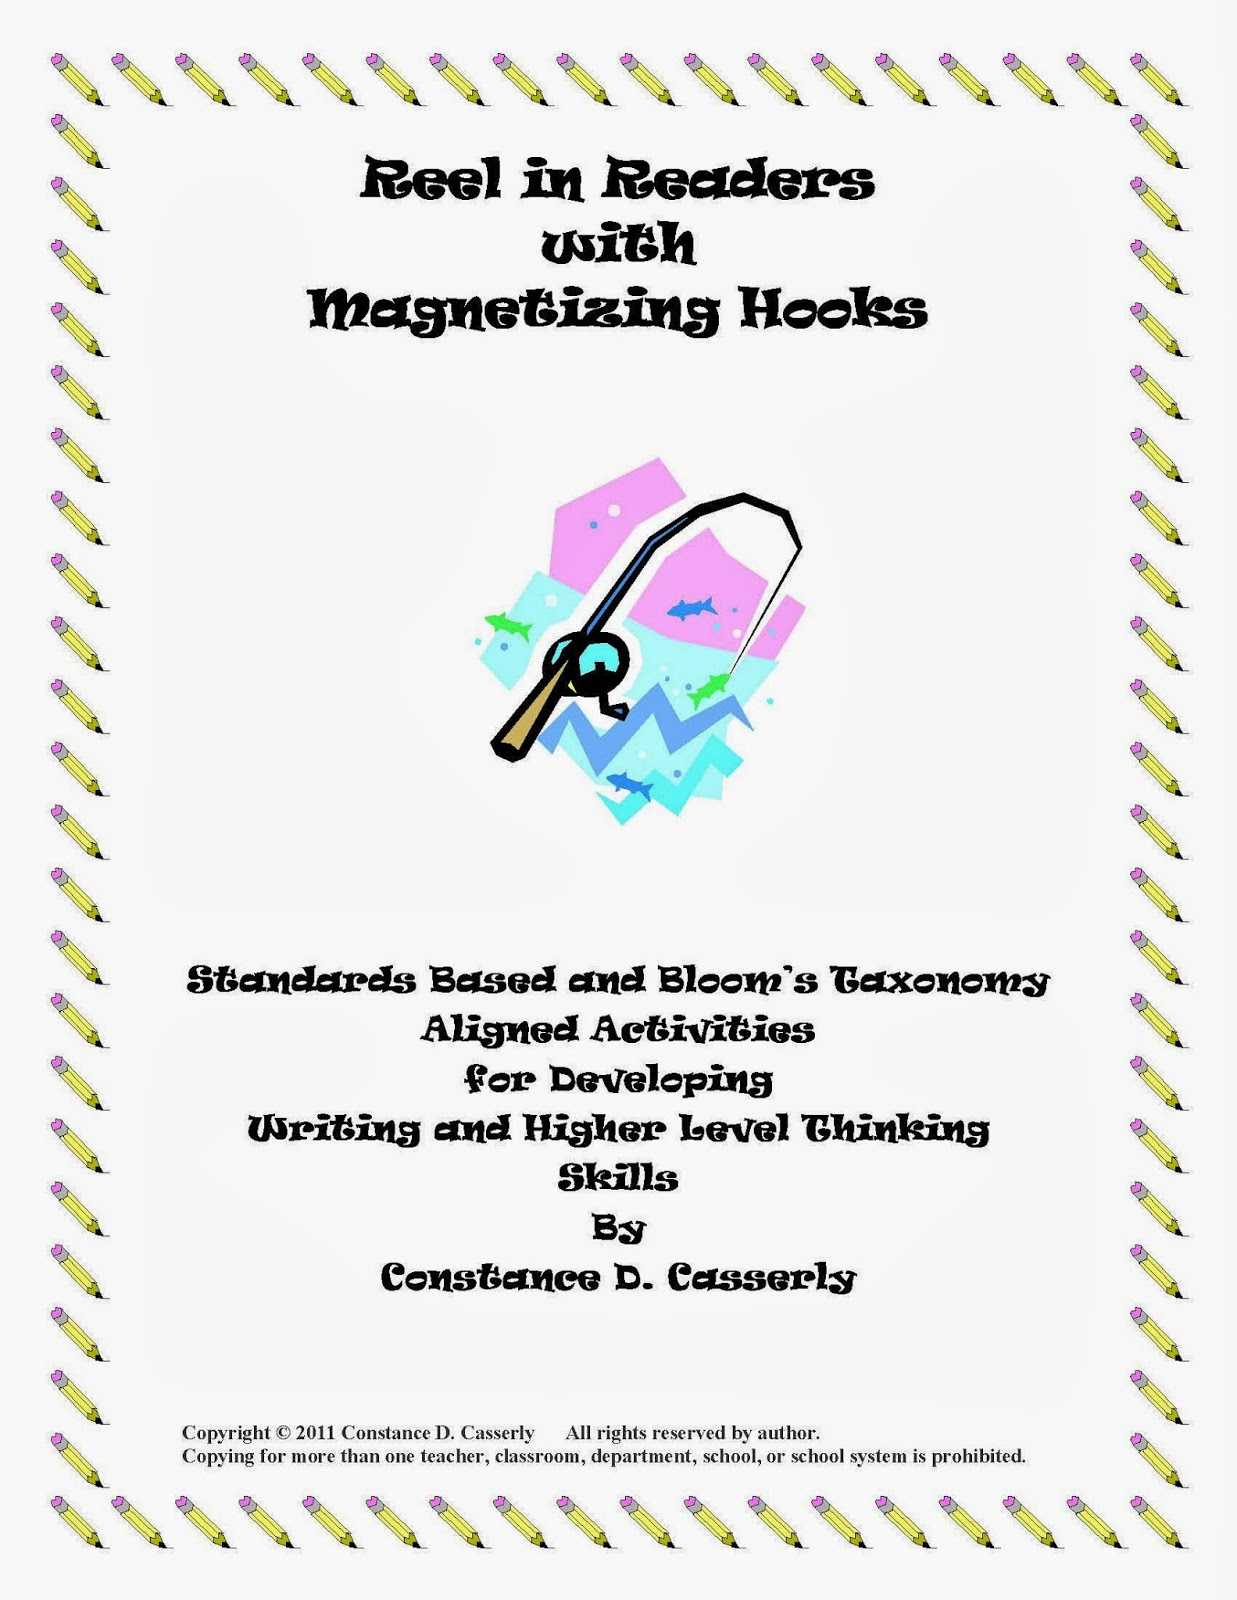 Activity: Writing: Reel in Readers with Magnetizing Hooks